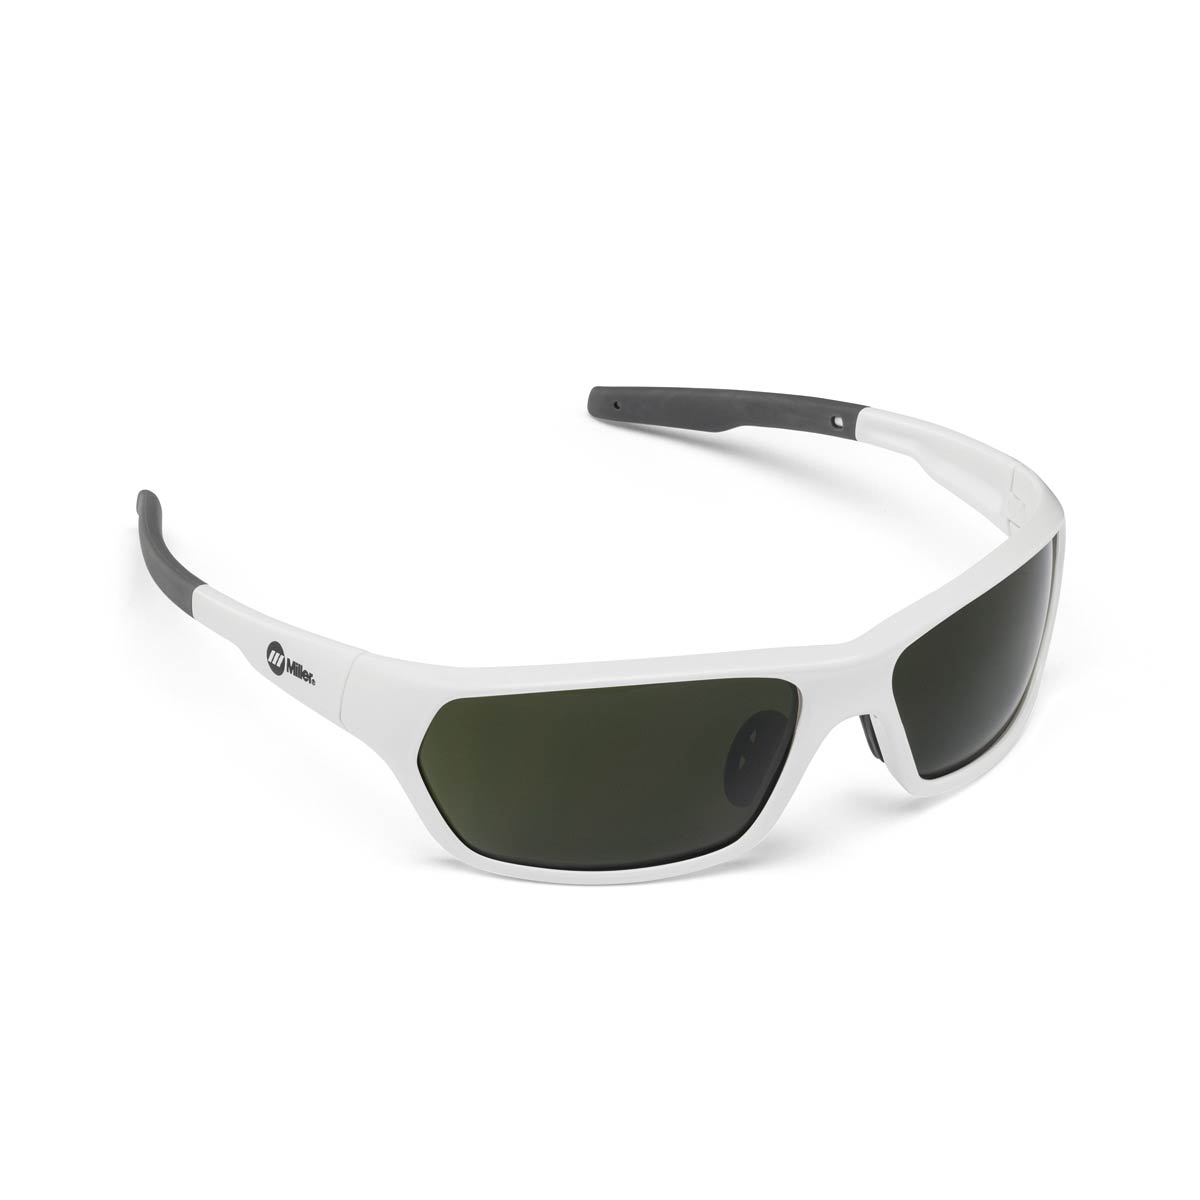 SAFETY GLASSES SLAG WHITE #5. Part: 272209. Pack: 1